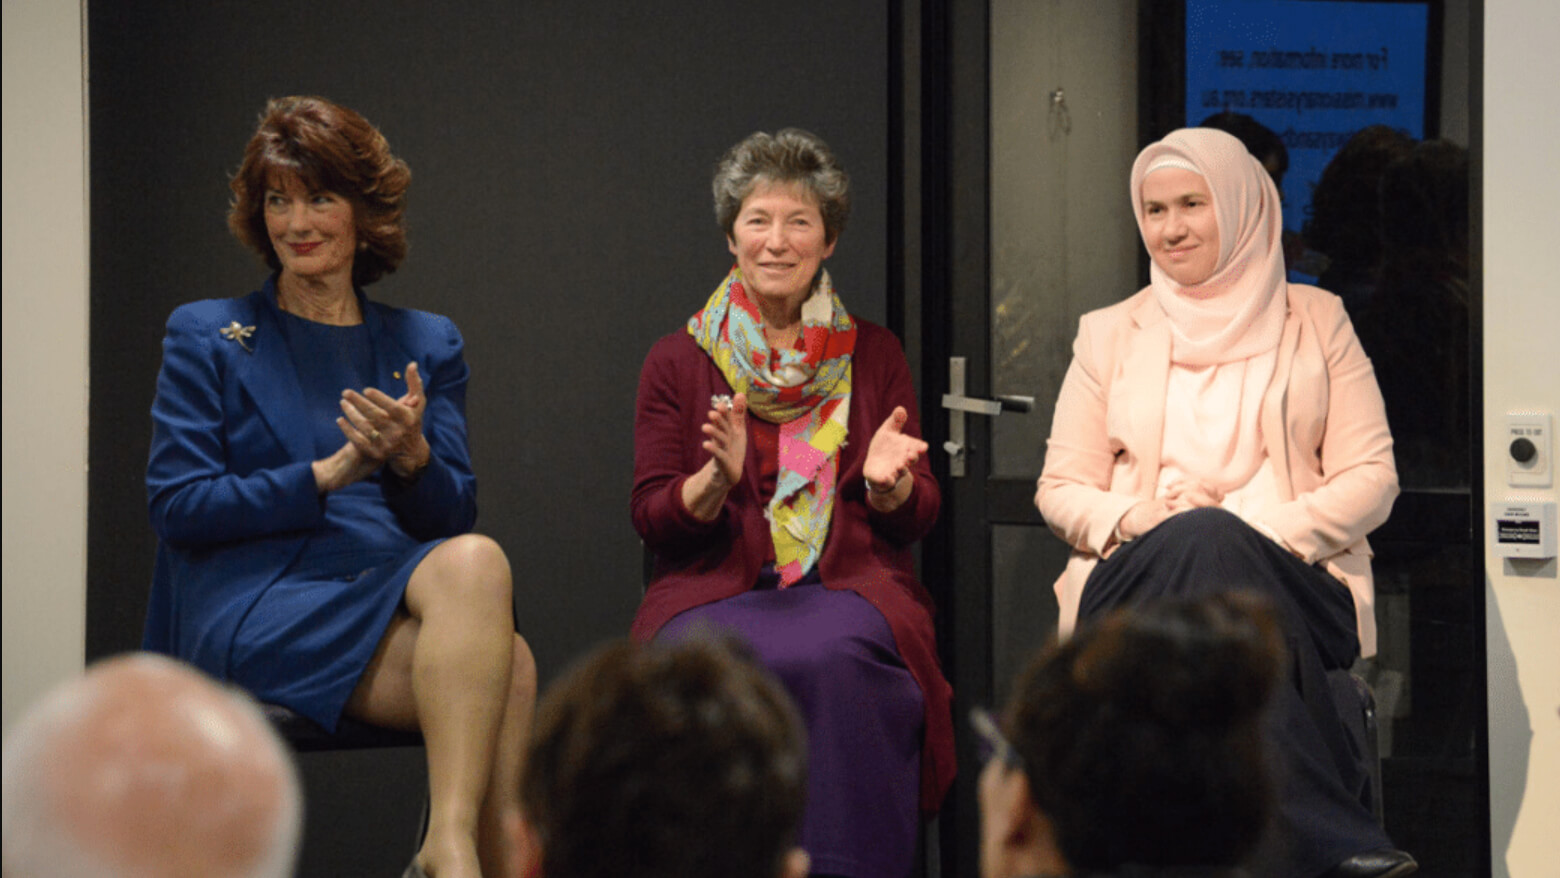 Three women sitting on stage clapping